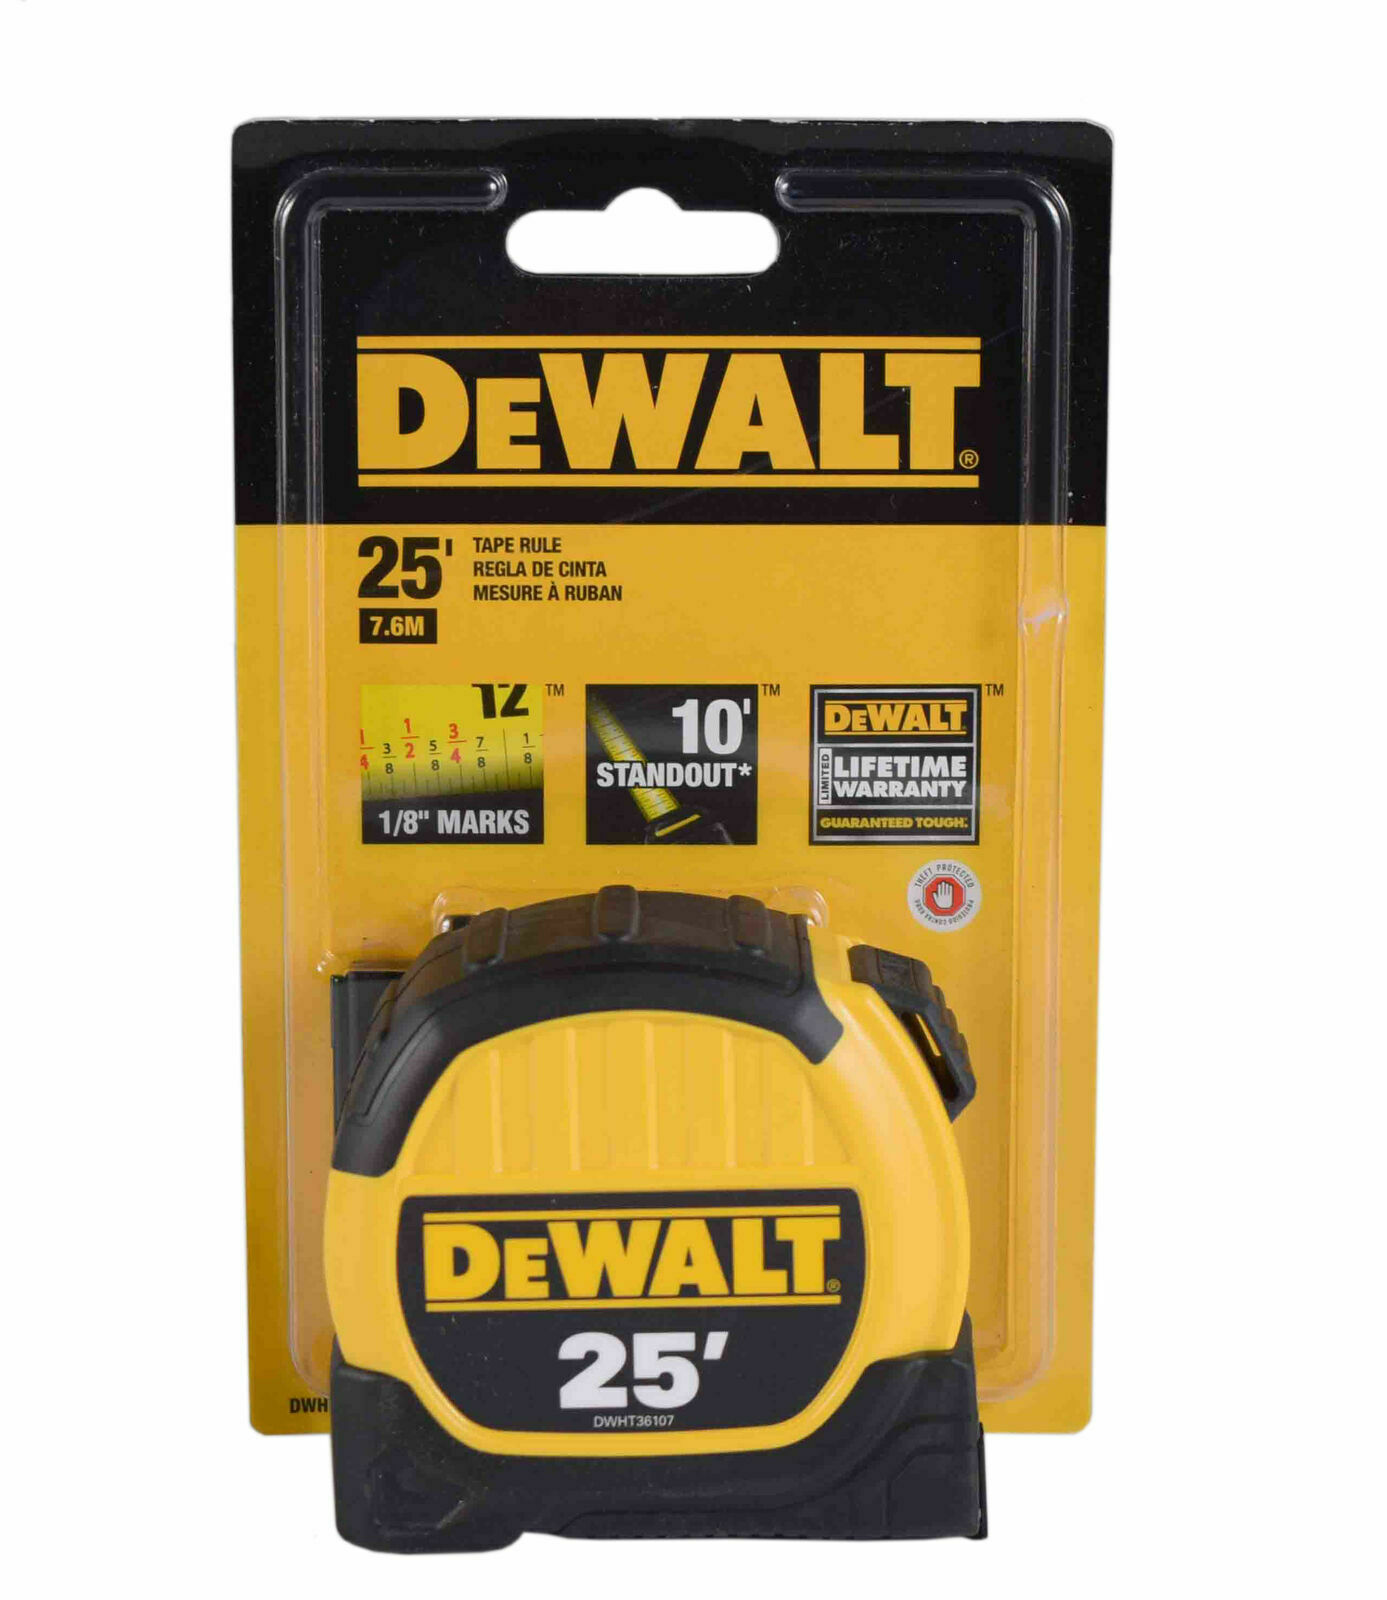 DEWALT DWHT33373L 1 1/8-Inch x 25-Foot Short Tape, 10-Foot S